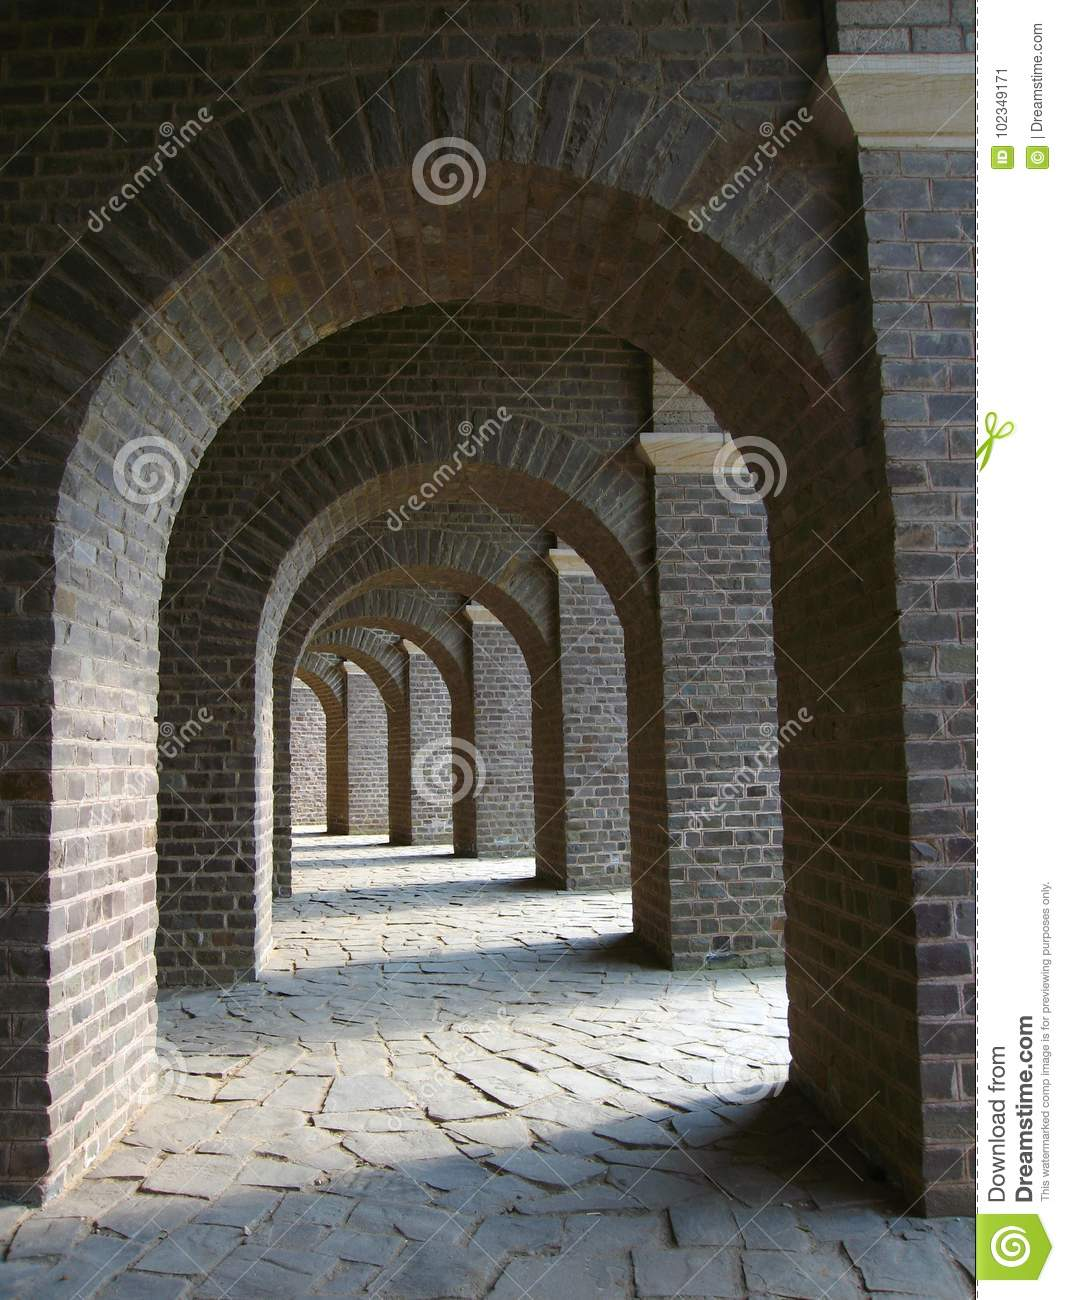 Arches of Roman Amphitheatre at Archaeological Park in Xanten, Germany